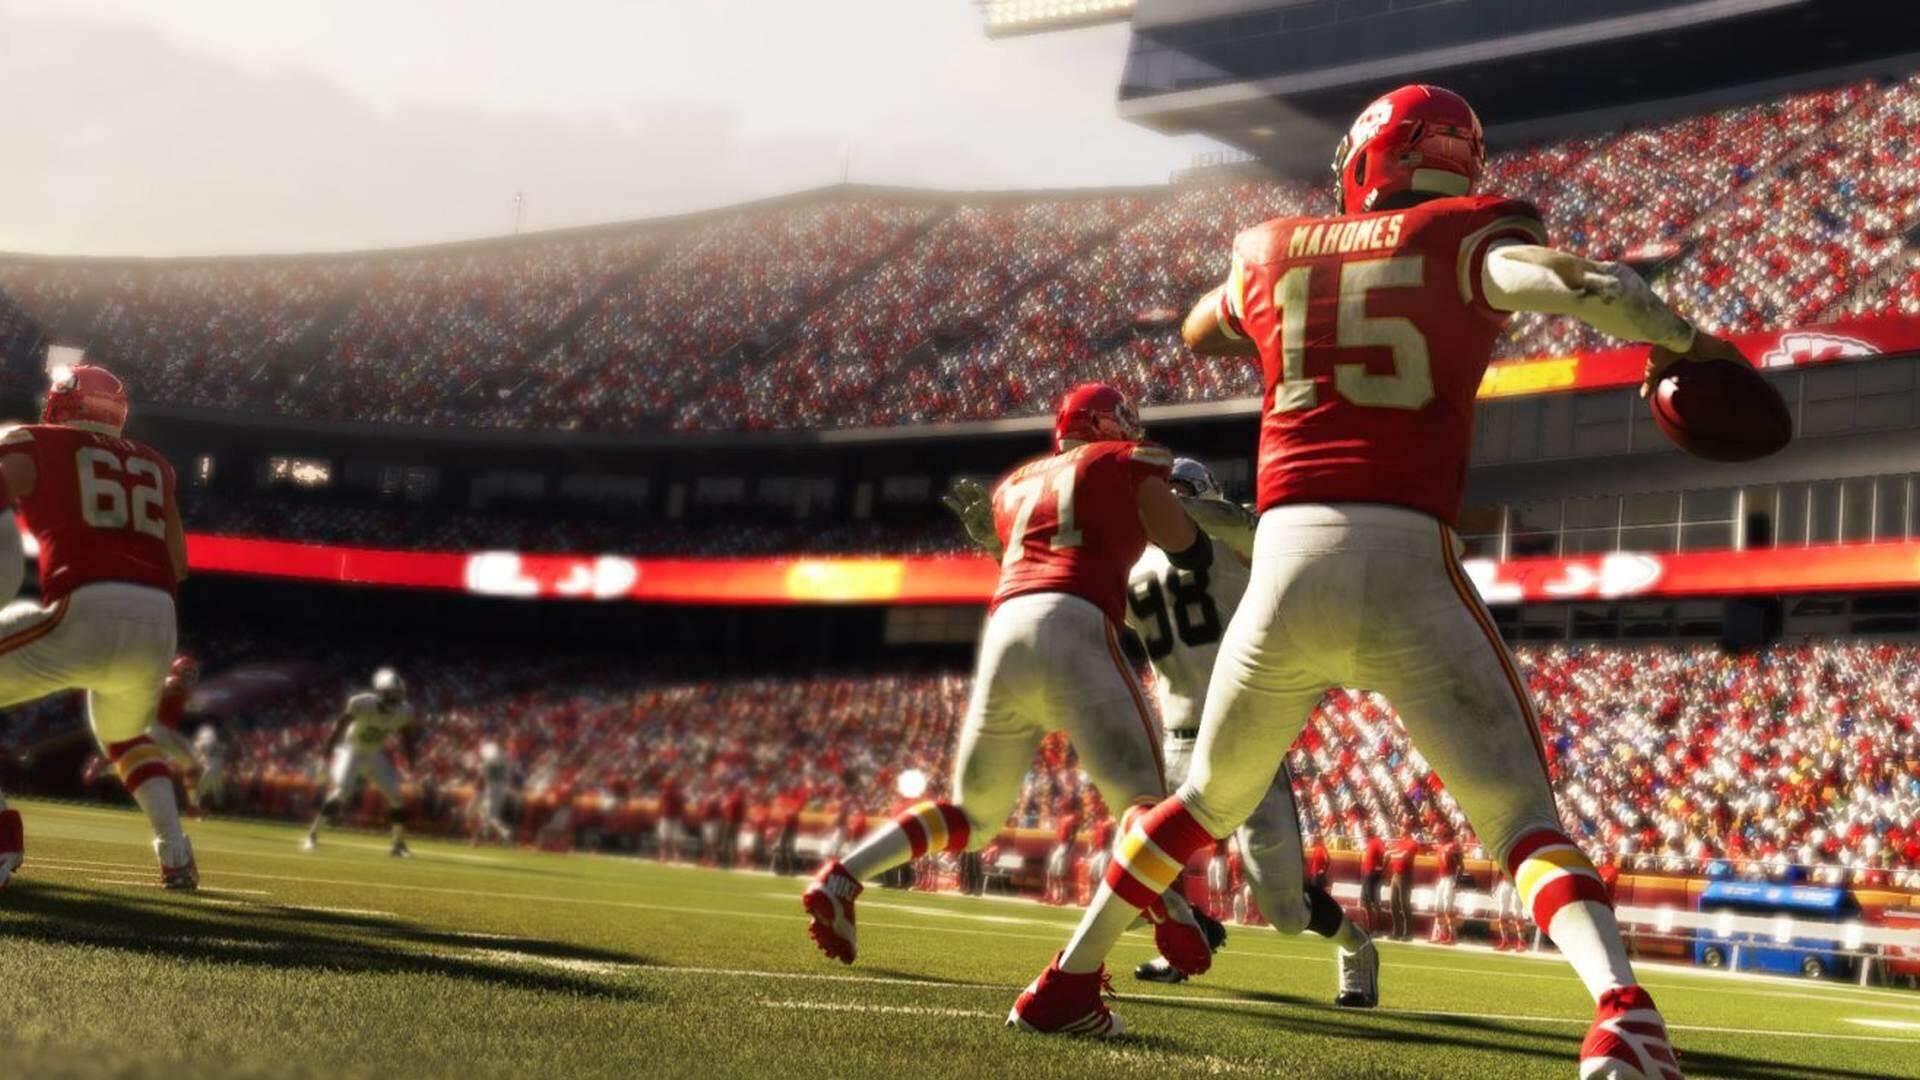 2K's Upcoming Football Games Will Feature Real-Life NFL Athletes Thanks to New Deal